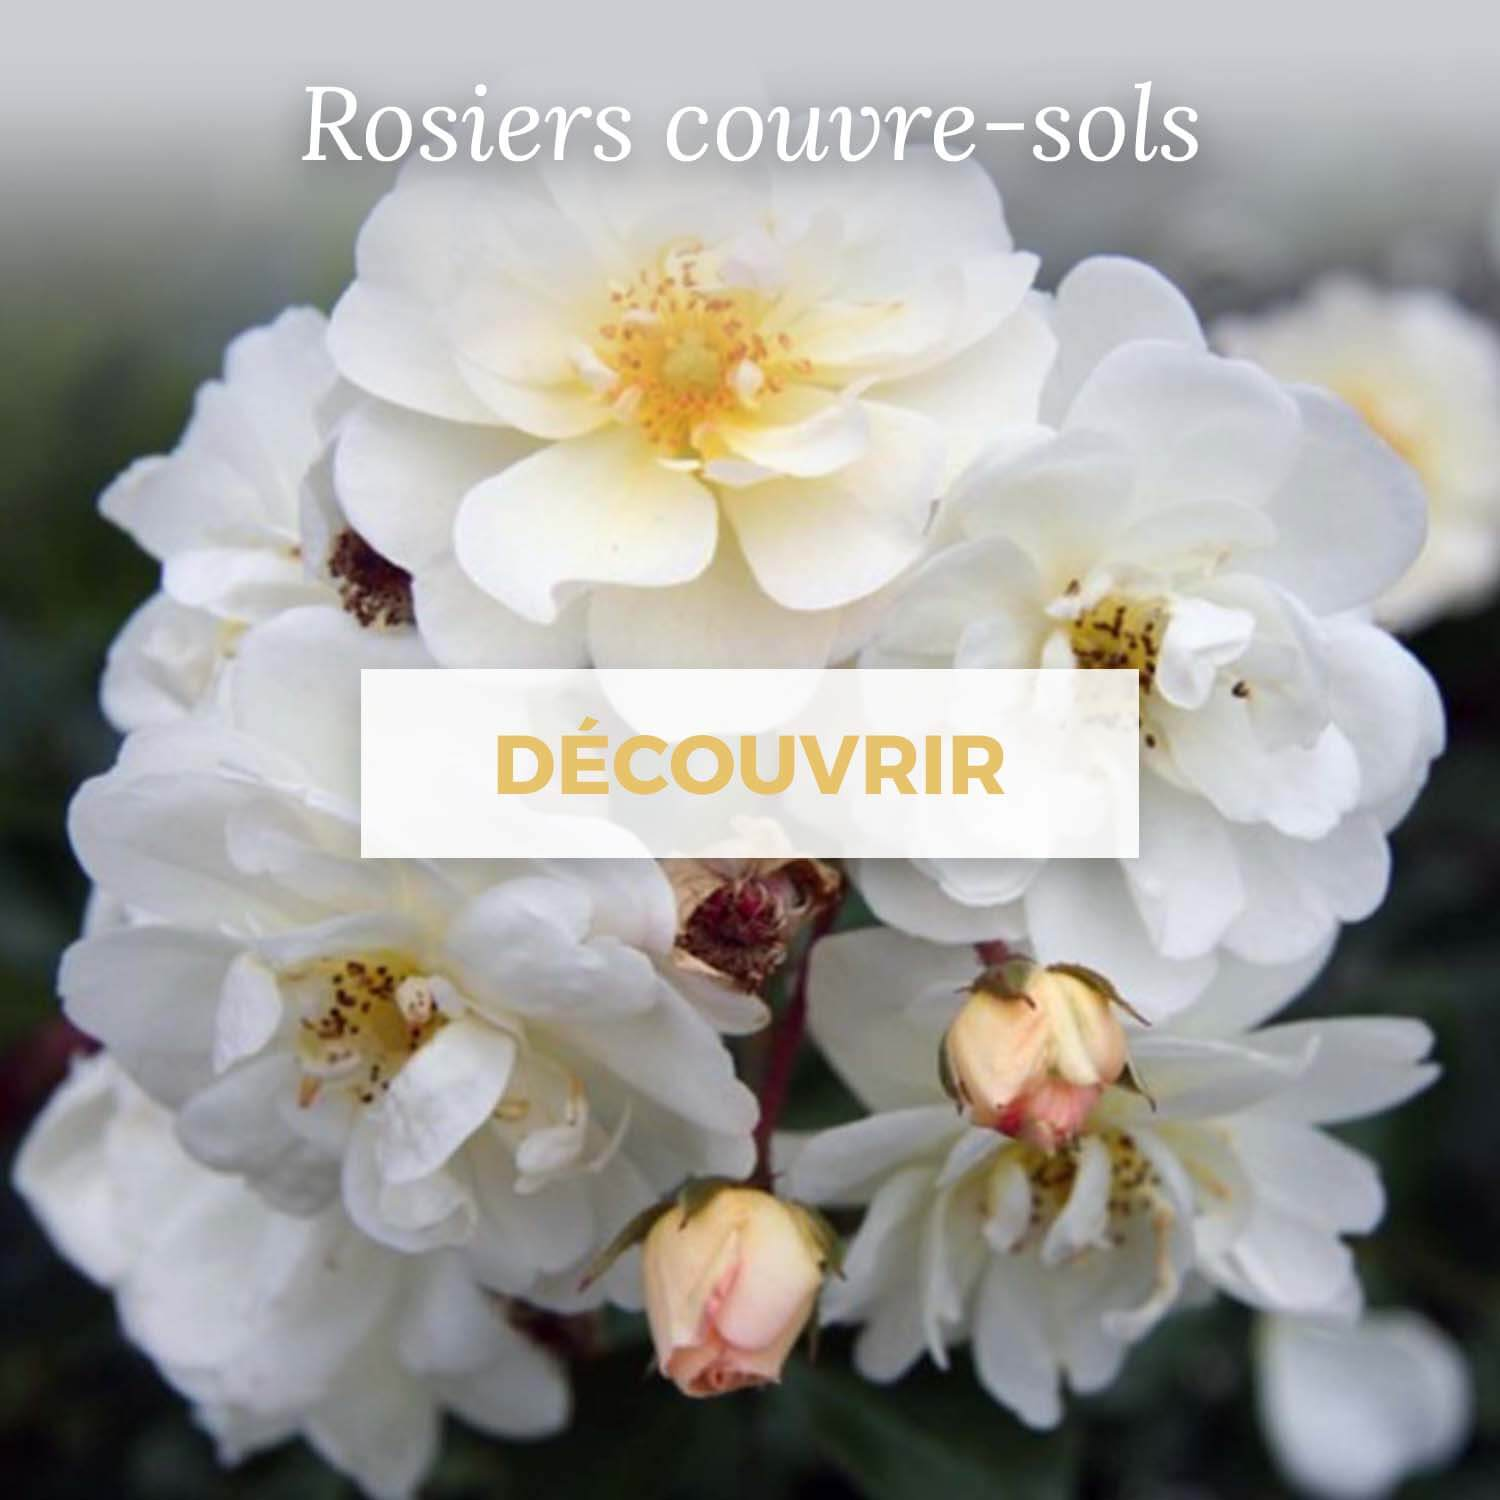 Achat rosier couvre-sol